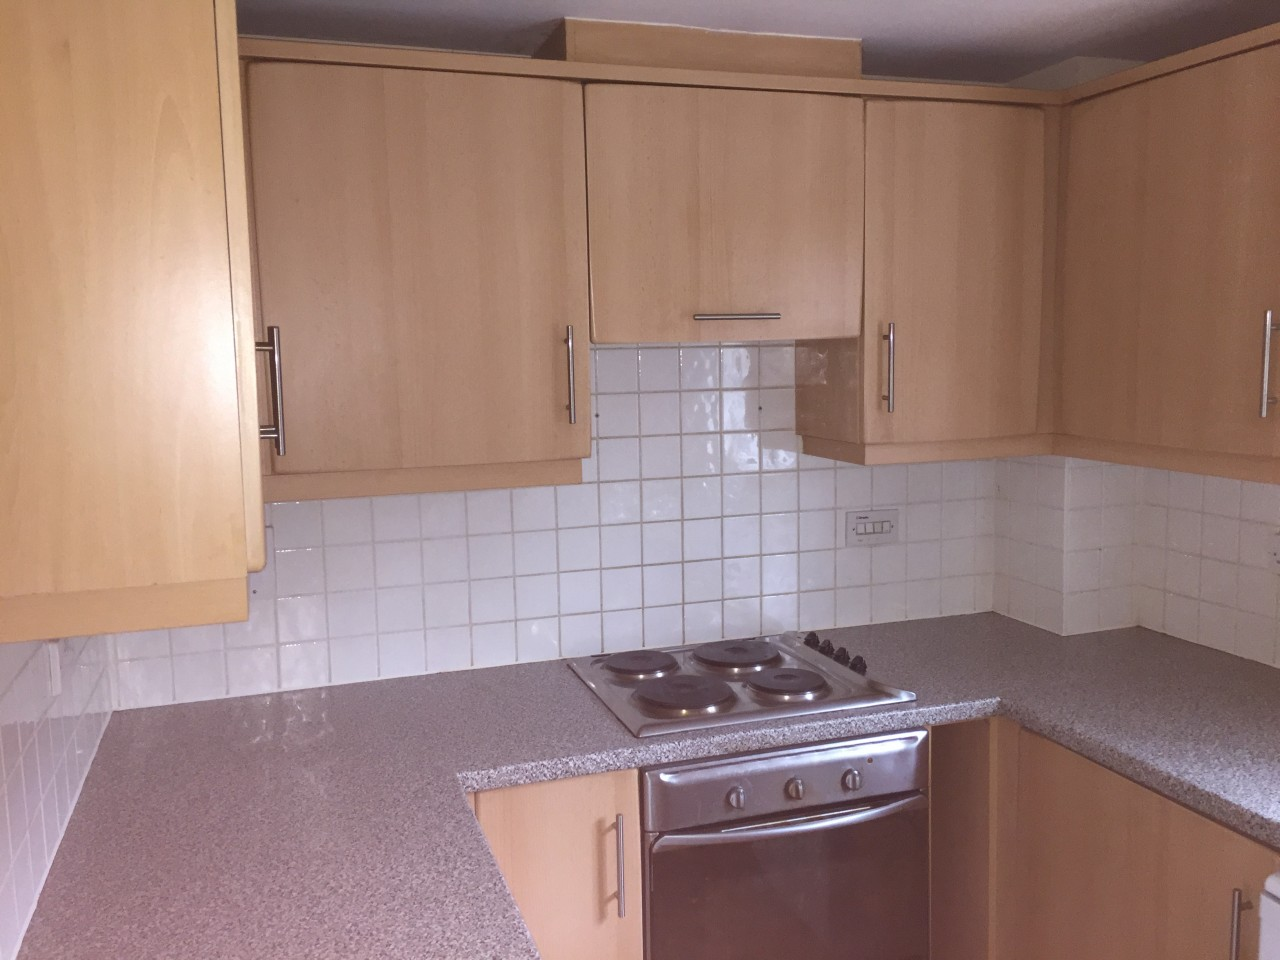 Kitchen Tiles High Wycombe spacious 2 bedroom flat to rent in high wycombe - the online